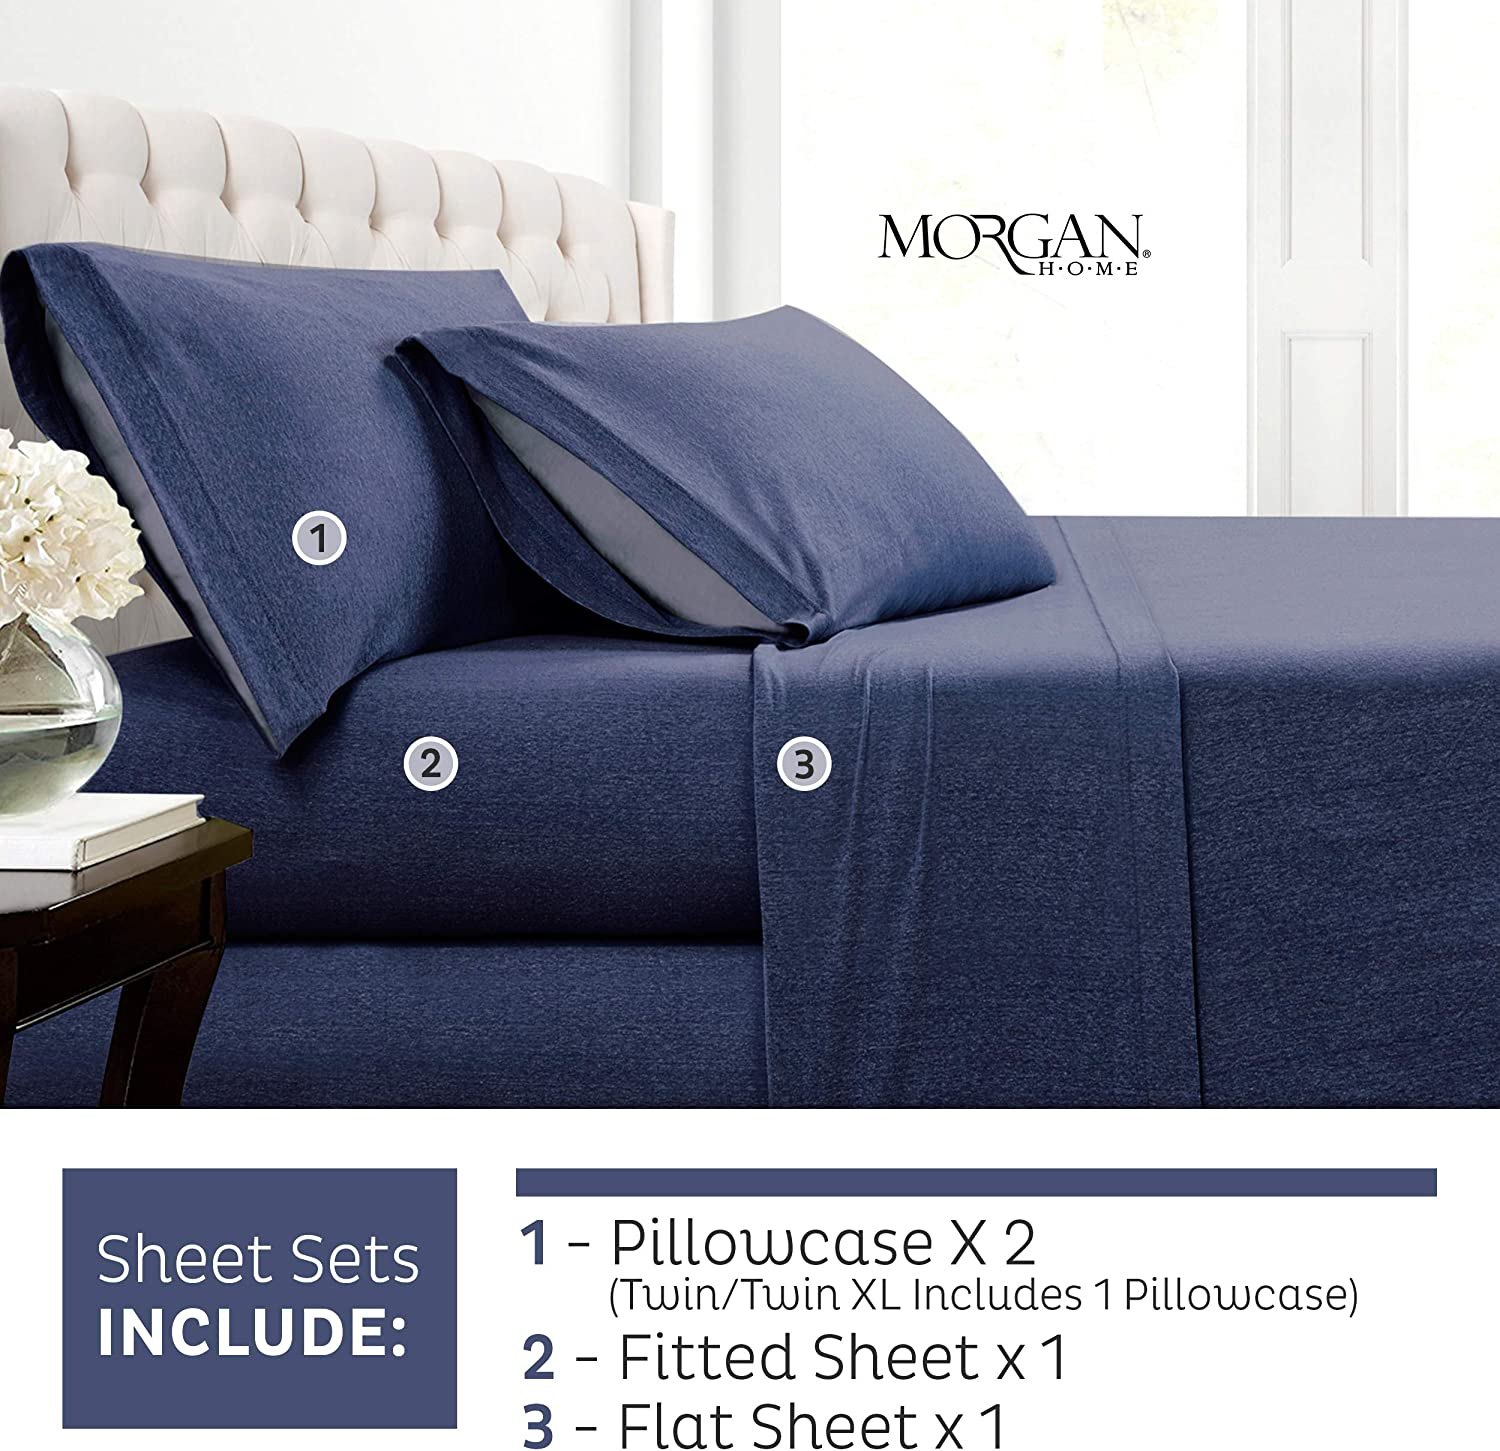 Morgan Home Fashions Cotton Rich T-Shirt Soft Heather Jersey Knit Pillowcases - All Season Bed Sheets, Warm and Cozy Fashions (2 Pack Pillowcases, Heather Indigo)